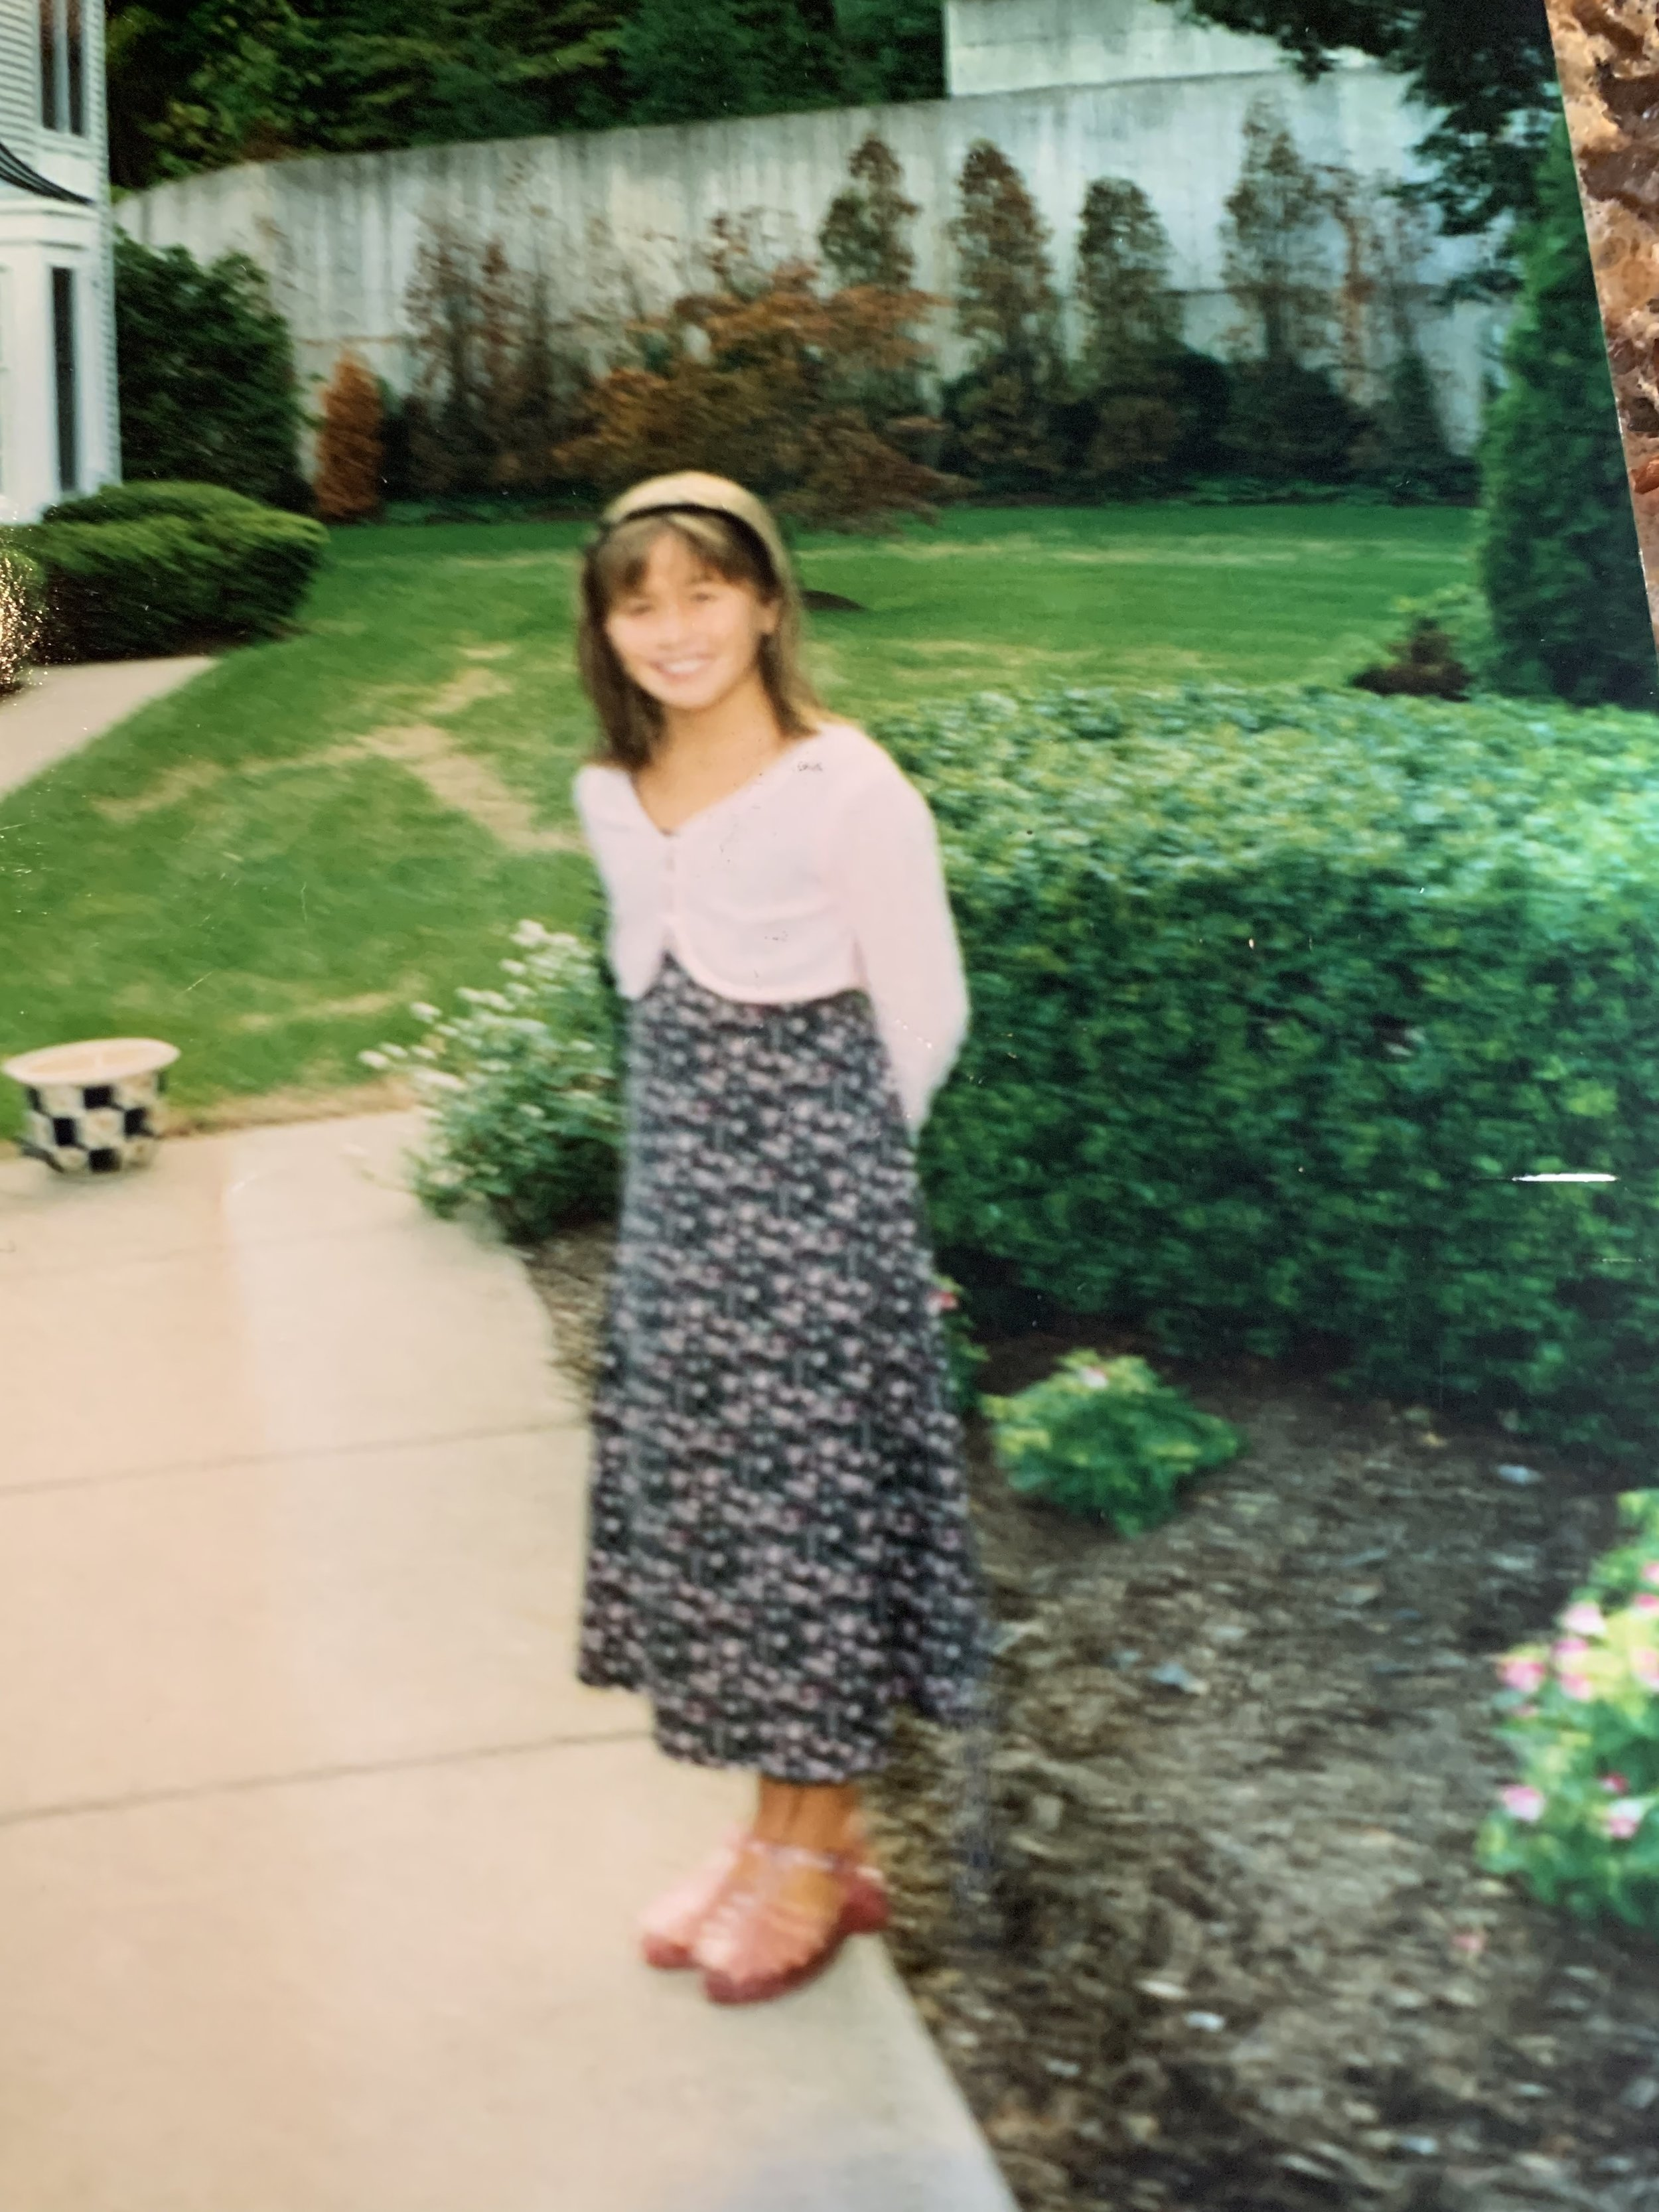 Some ill-advised back-to-school fashion from my own elementary school days. Check out those jellies!